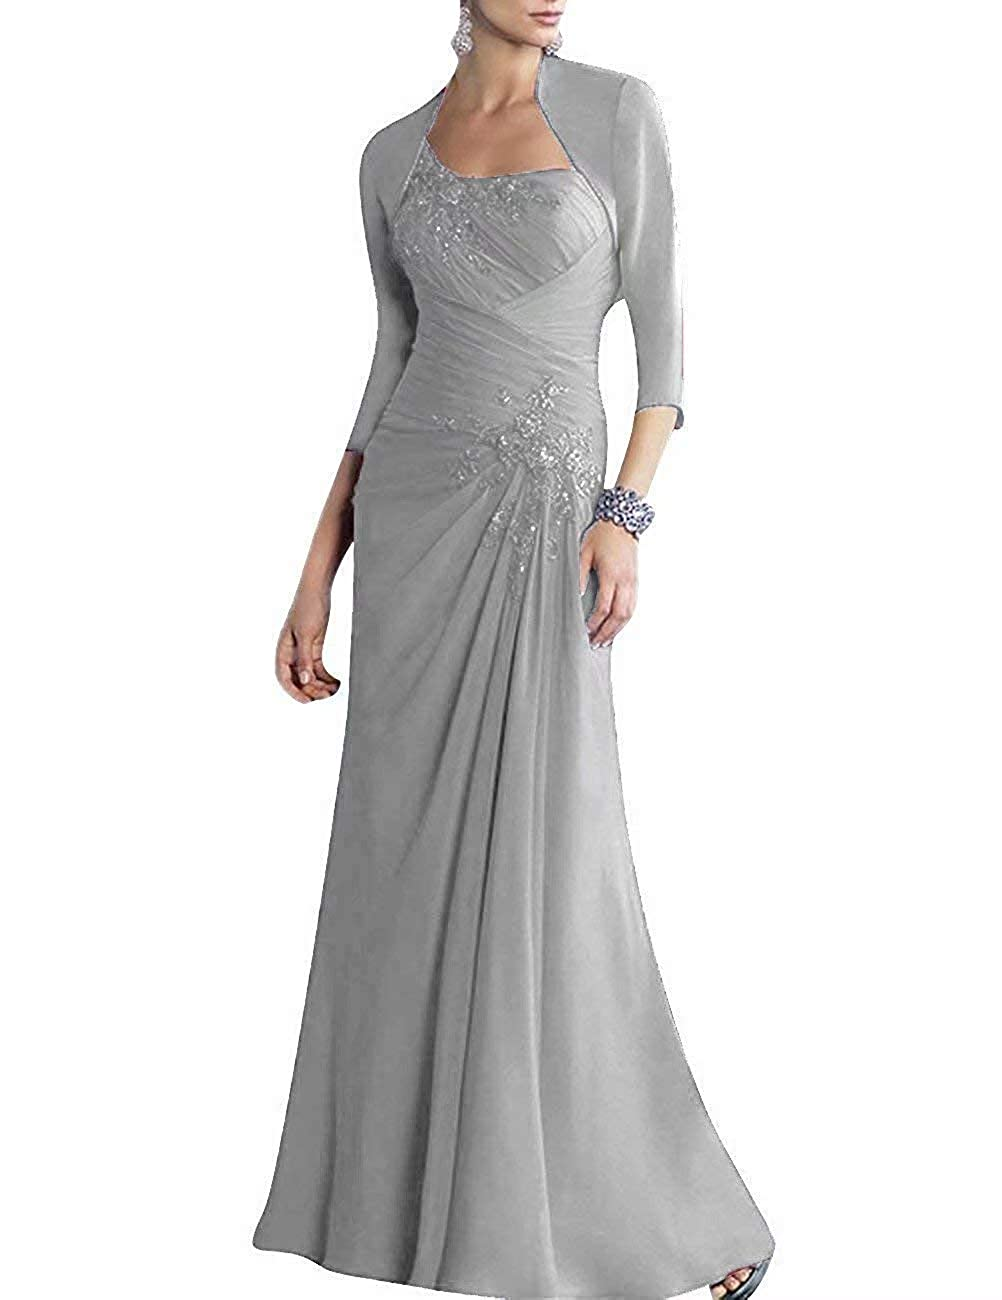 0673285d45f RONGKIM Women s Two Piece Mermaid Mother of The Bride Long Evening Wedding  Gown at Amazon Women s Clothing store